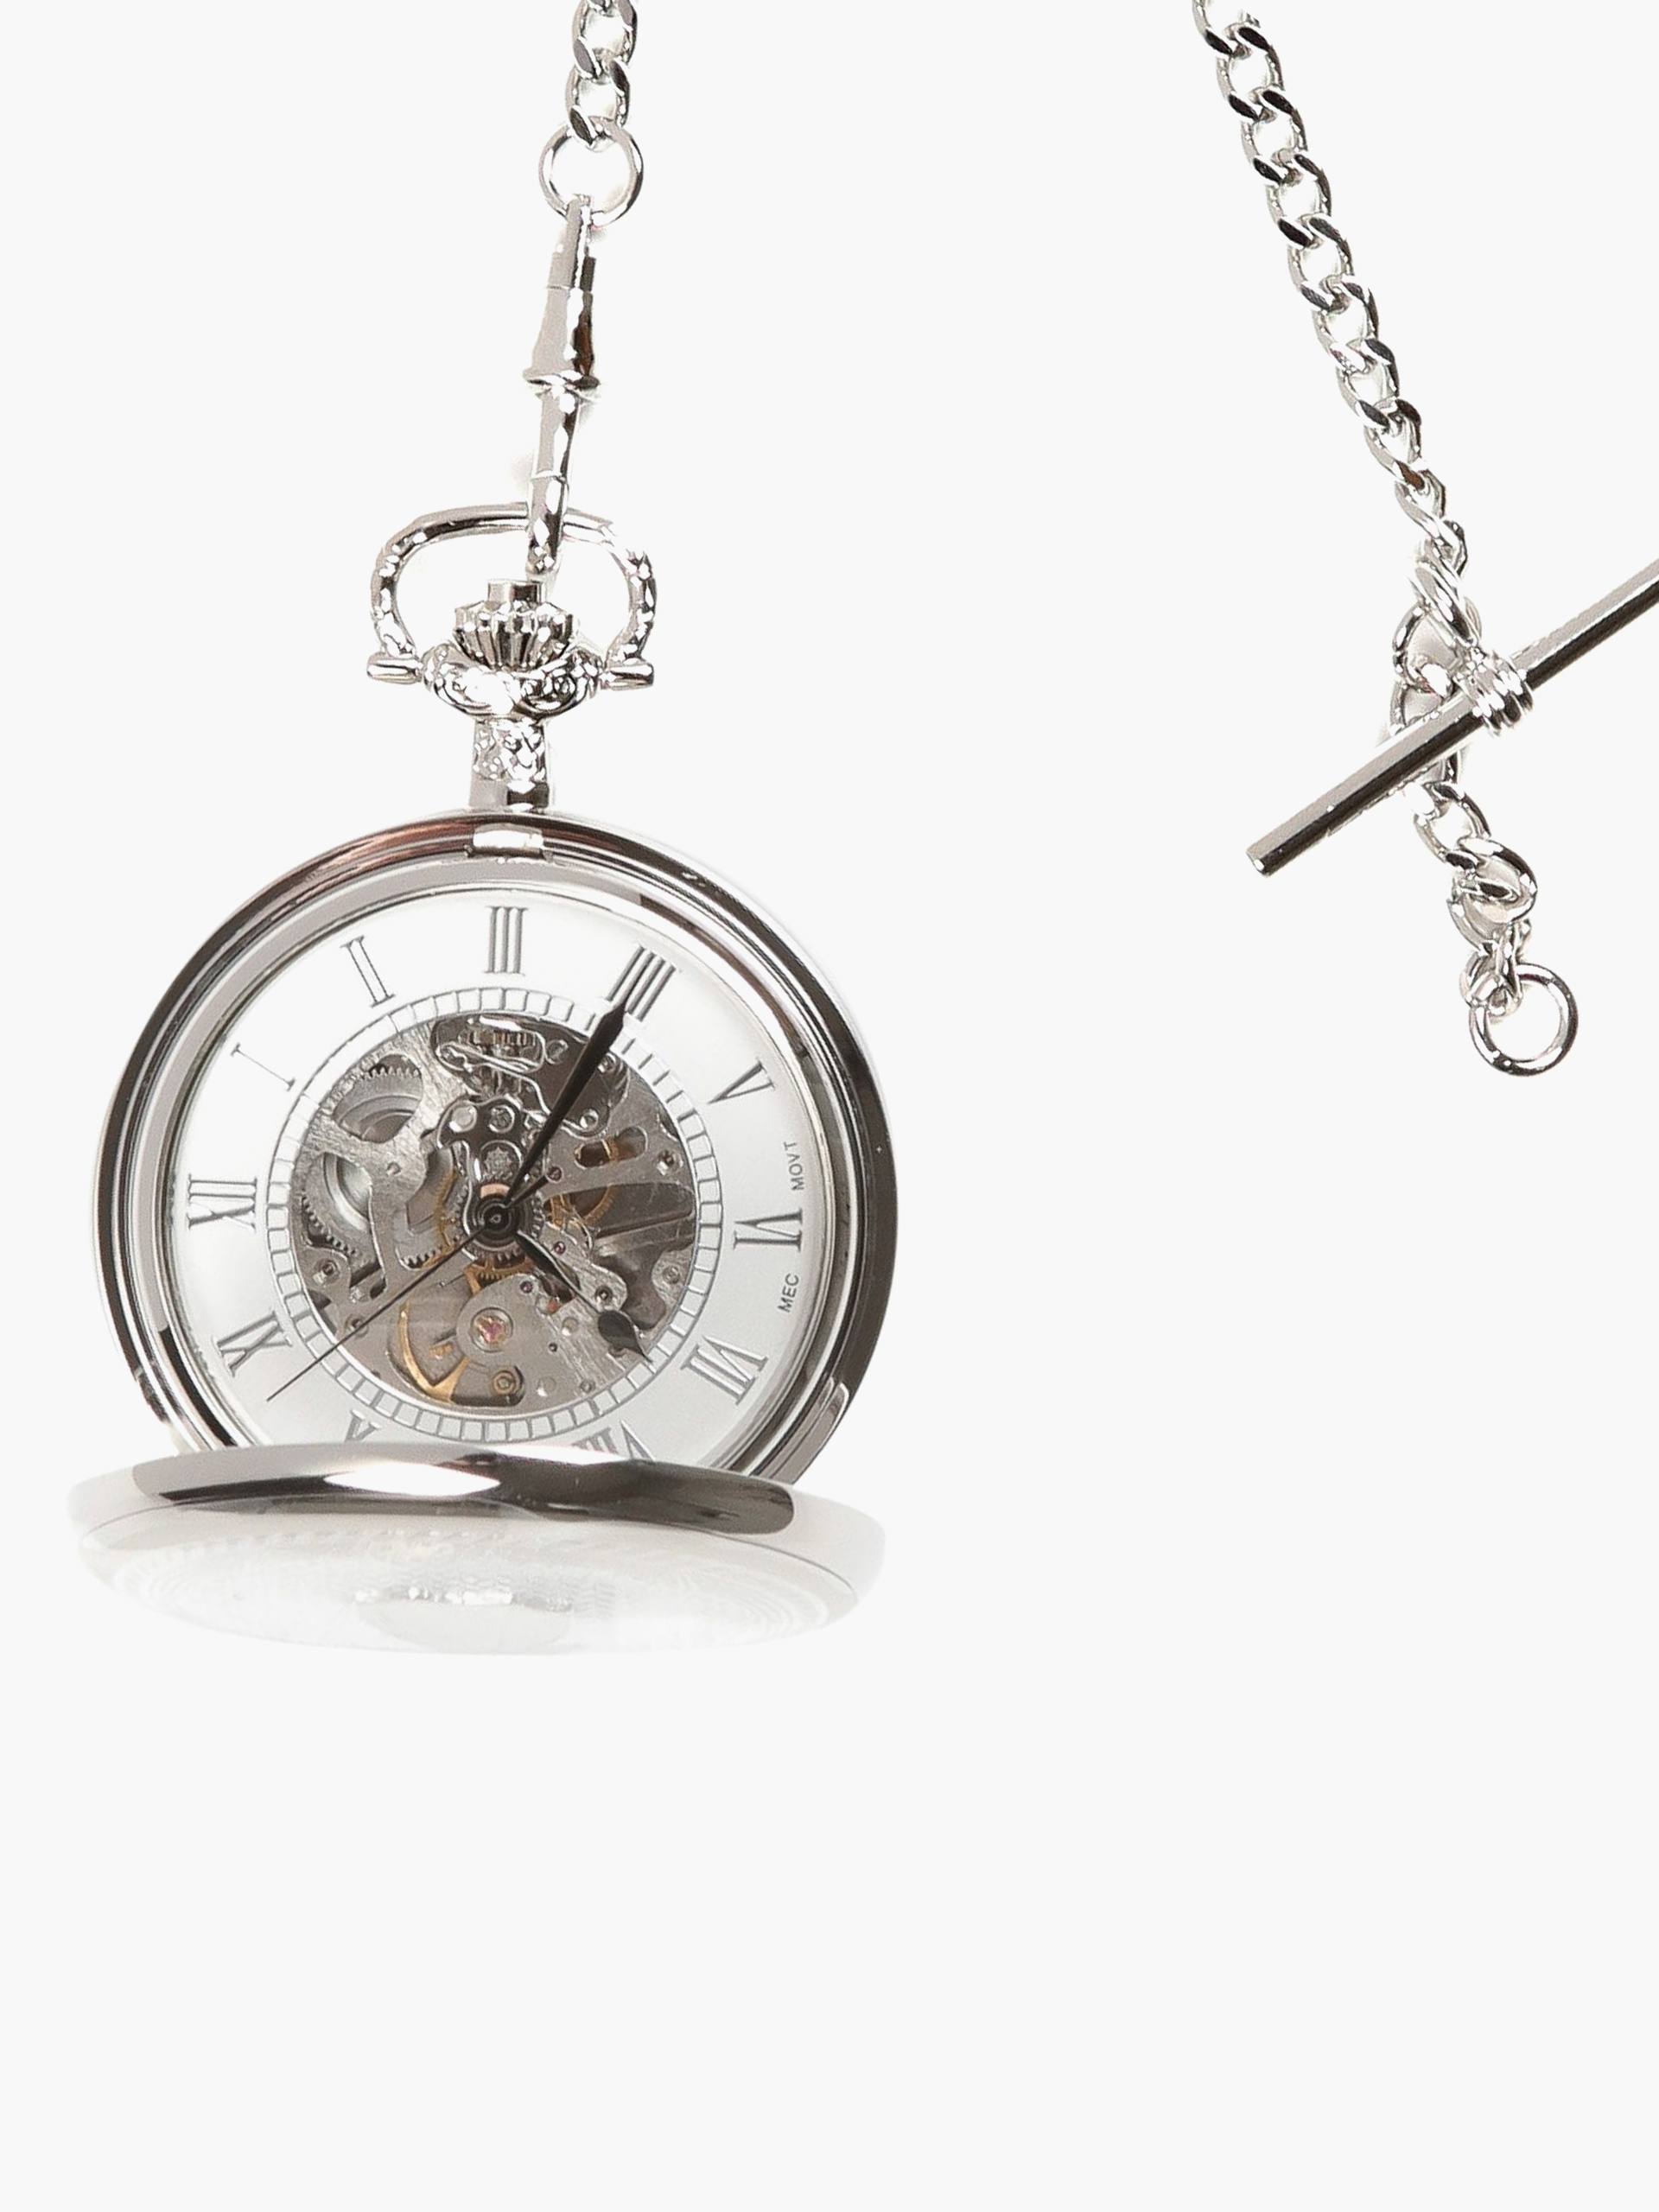 1920x2560 Win A Silver Pocket Watch For Your Groom